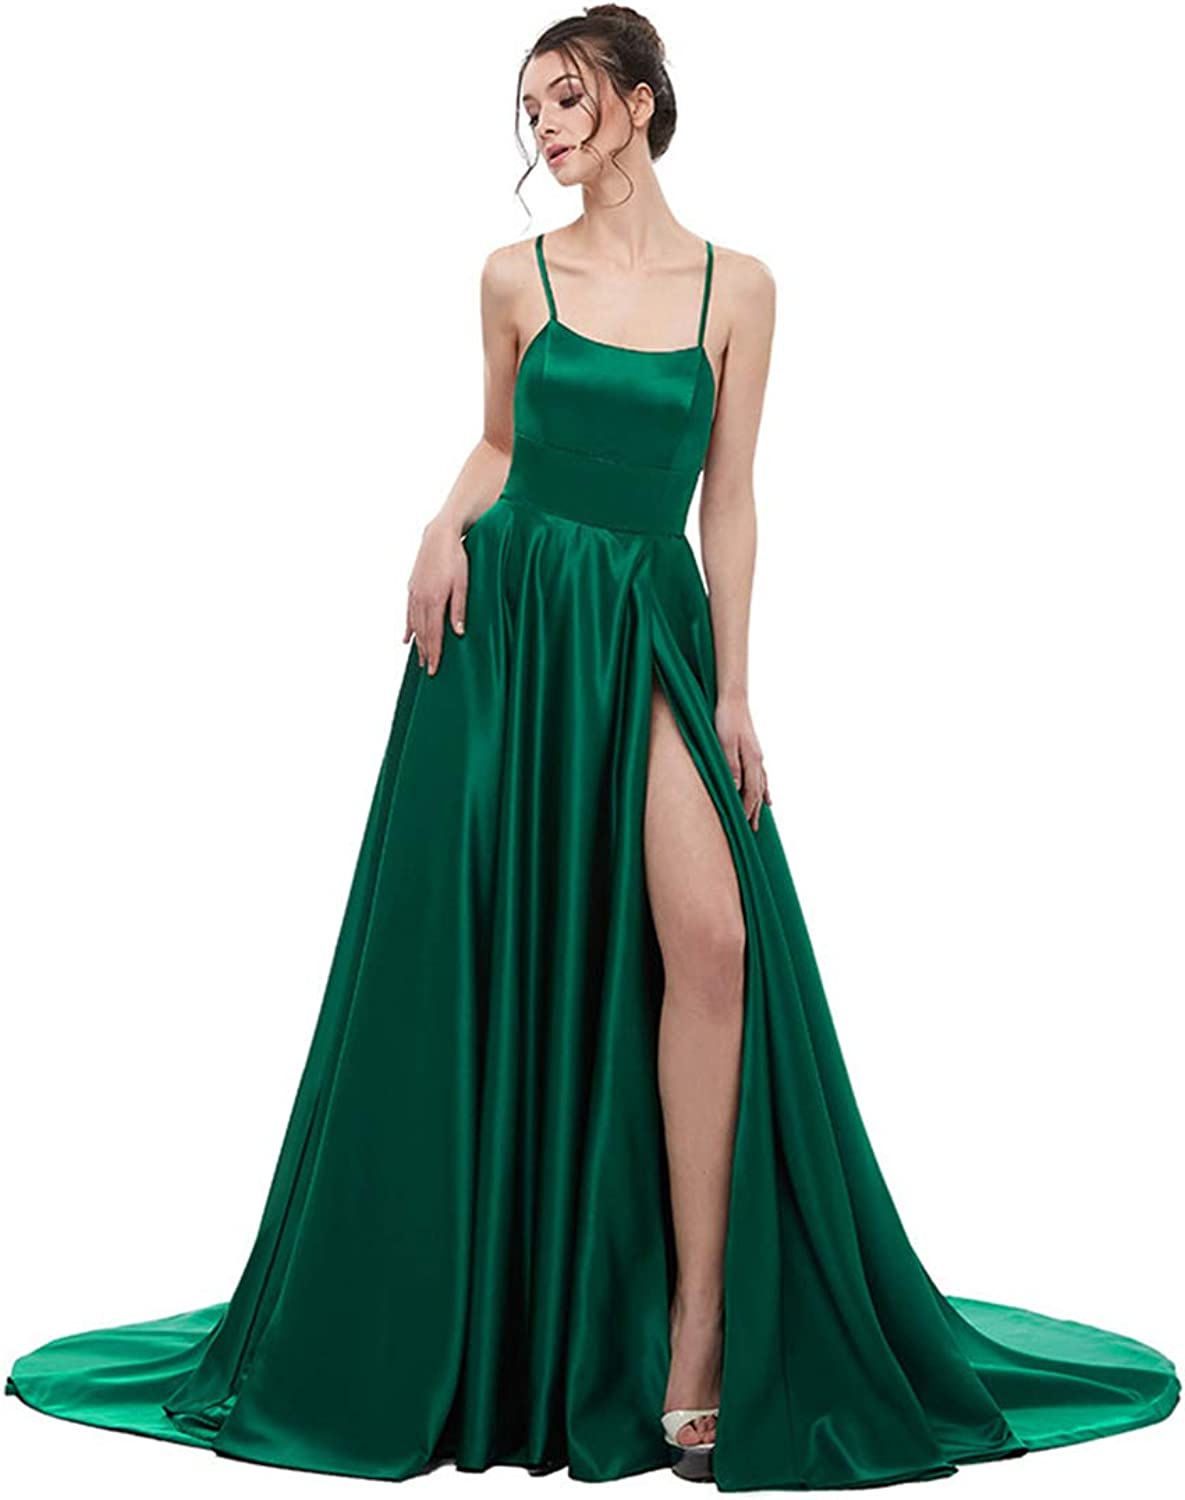 Green Evening Dress A Line Satin with Spaghetti Straps Long Prom Party Dress Side Split Evening Gowns